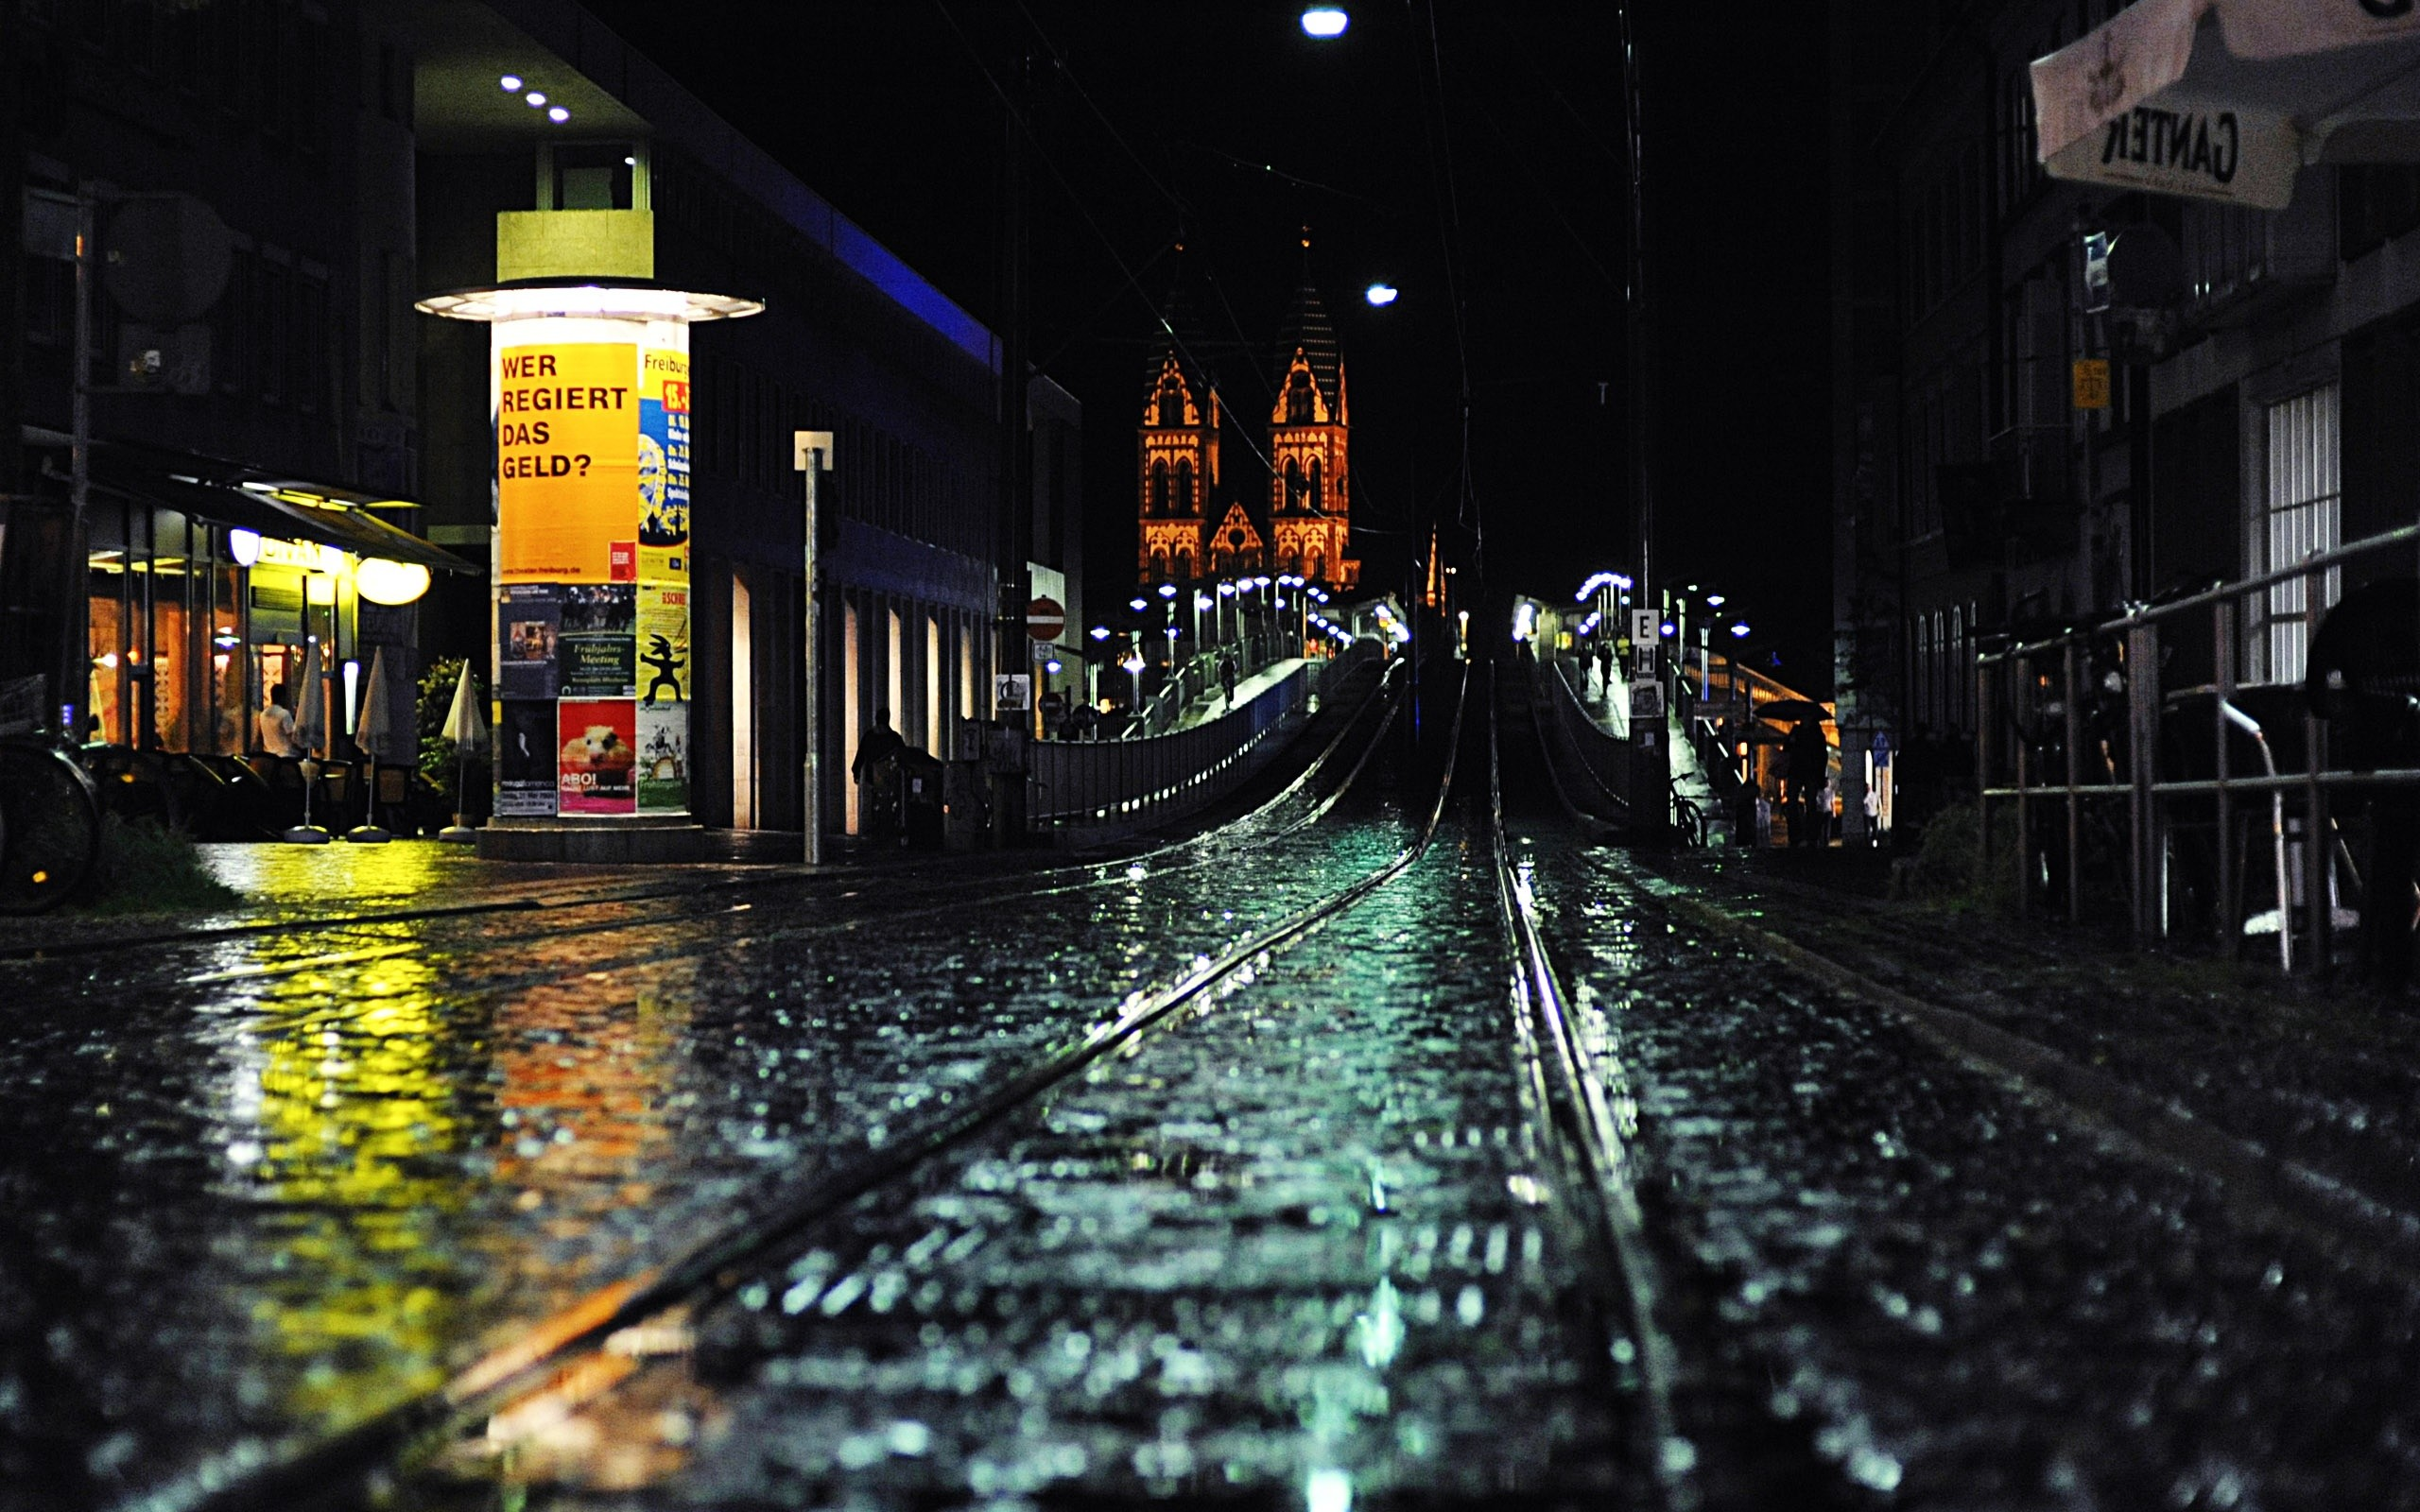 Night Rain In The City Hd Wallpapers Widescreen | sun | Pinterest  | Hd wallpaper, Wallpaper and Desktop backgrounds